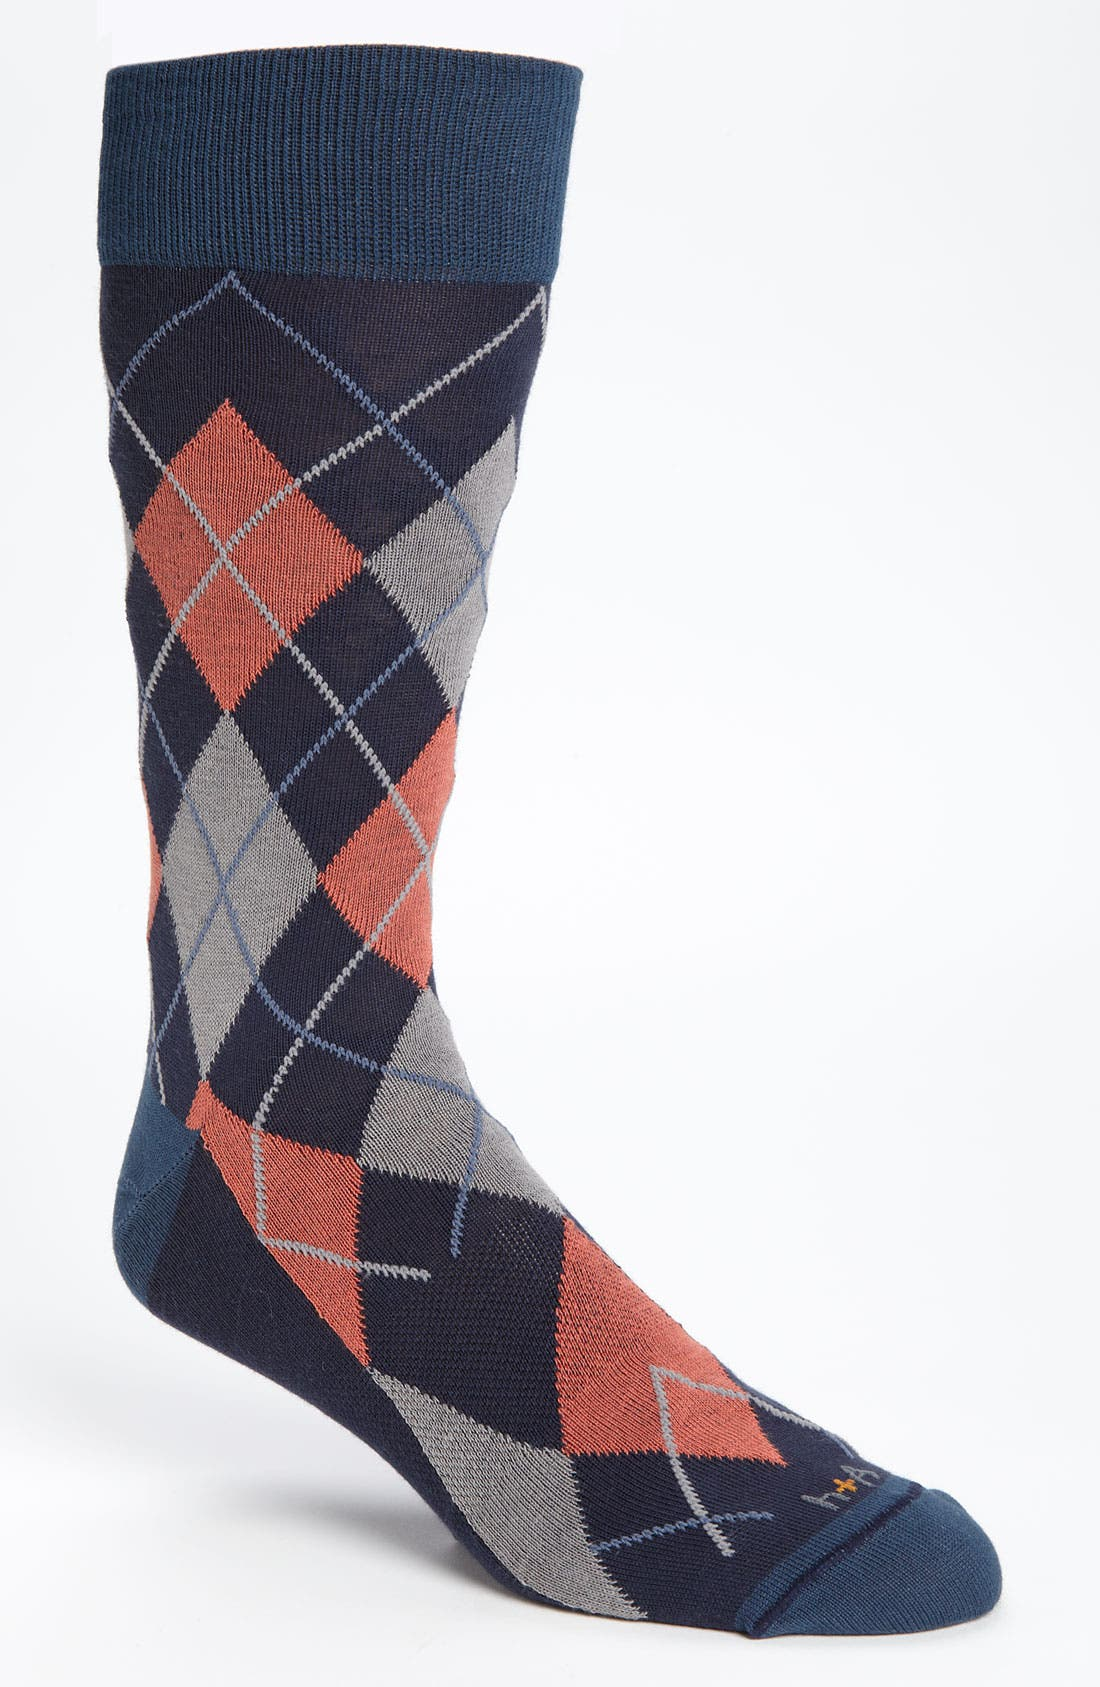 Alternate Image 1 Selected - hook + ALBERT Argyle Socks